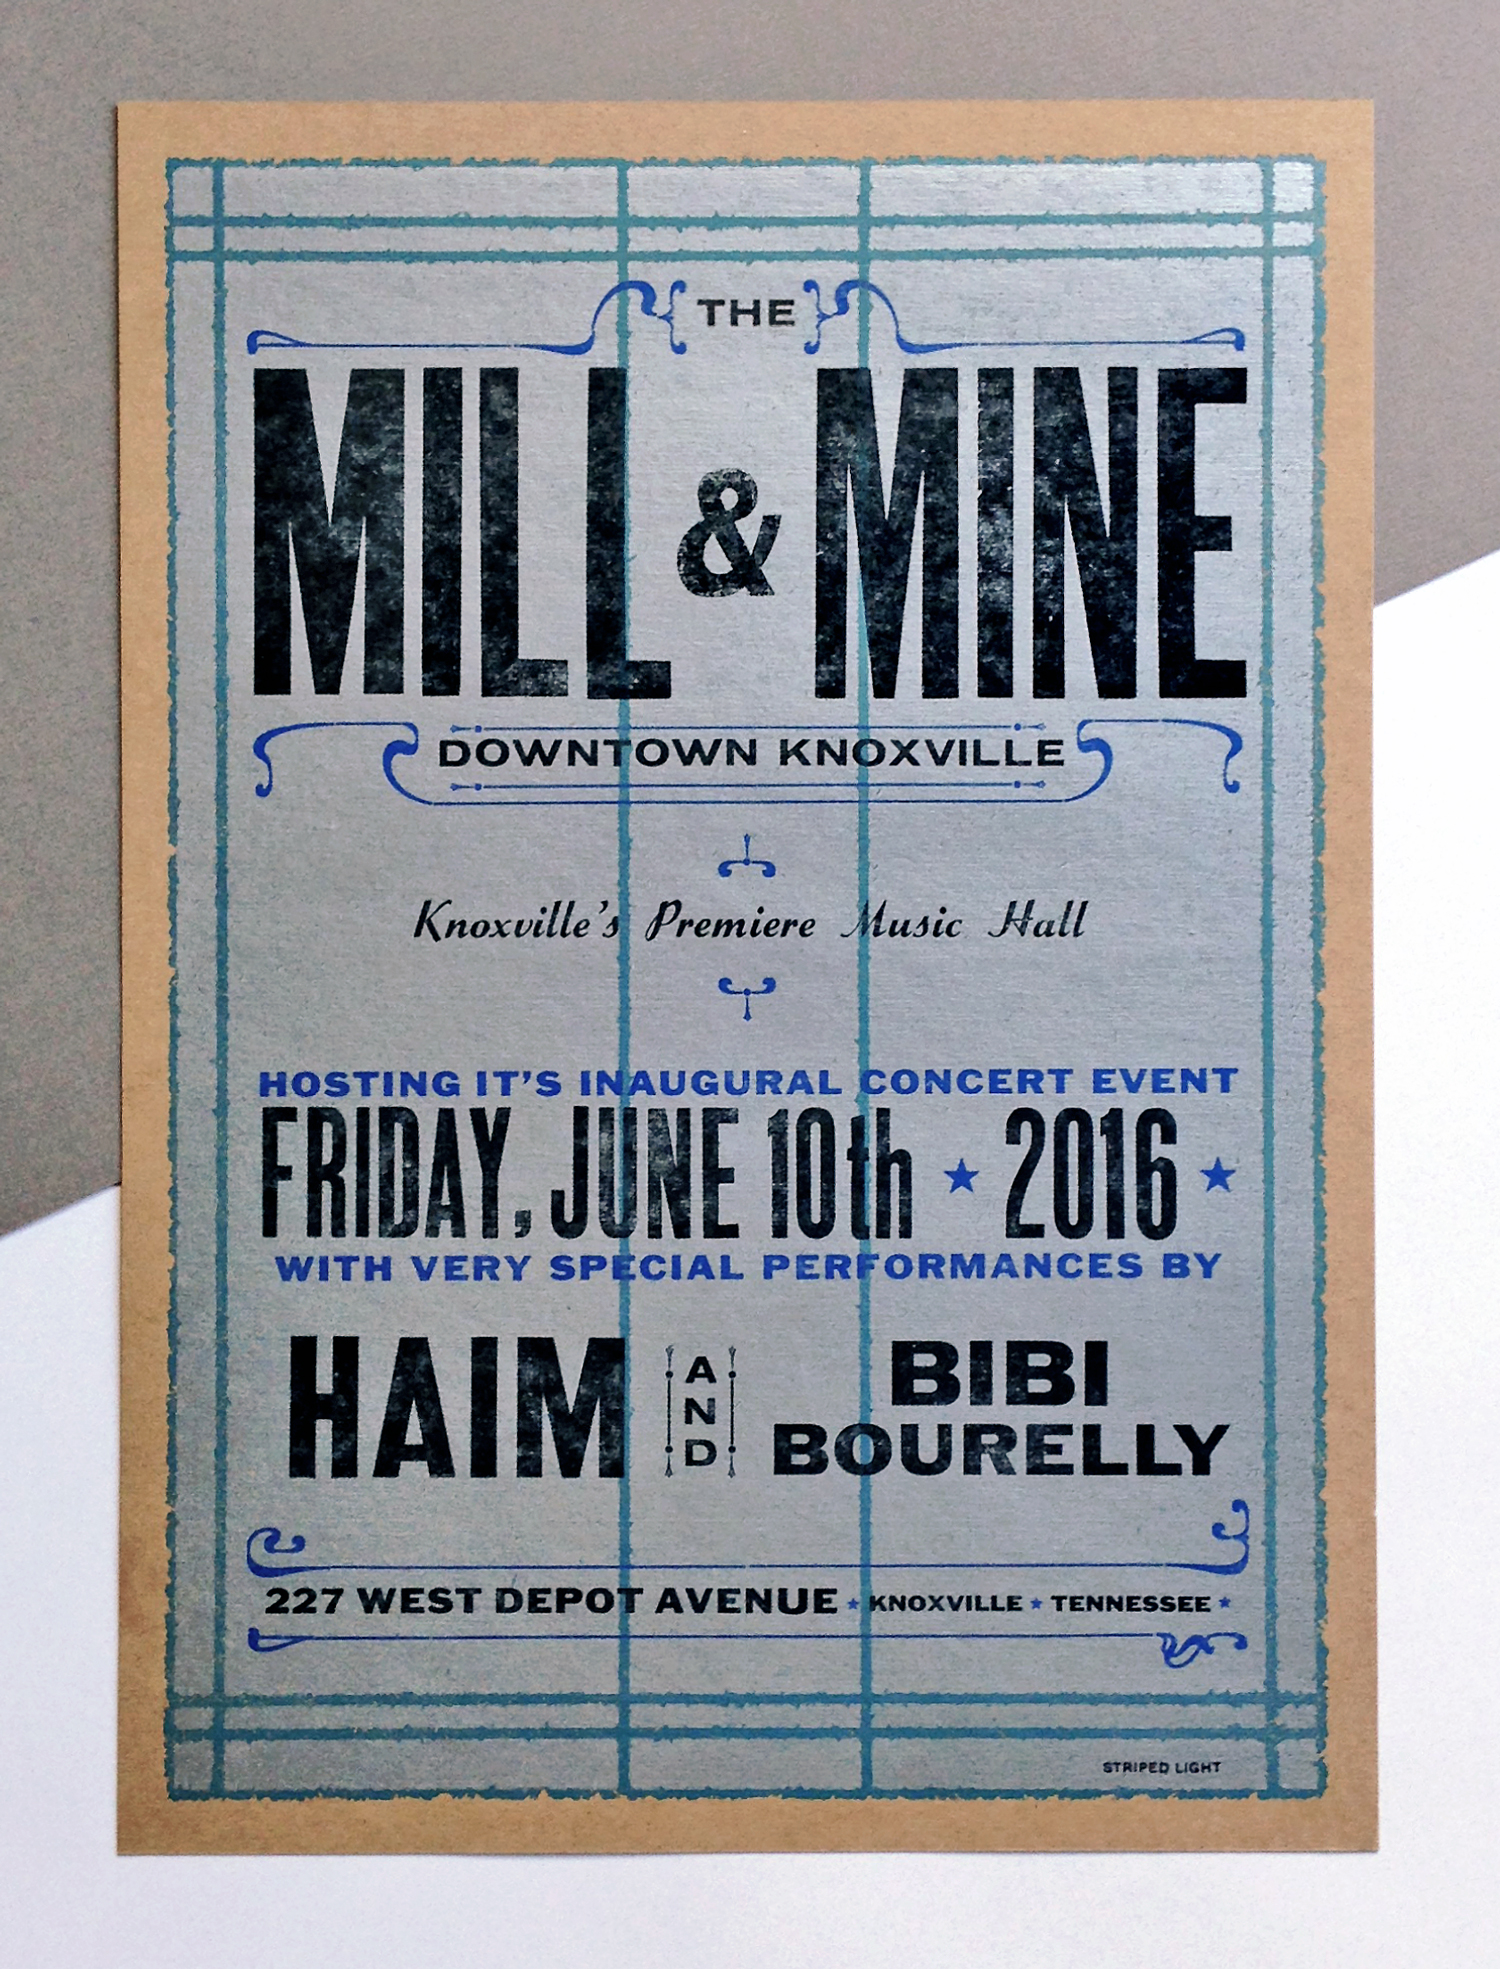 Four color handset poster by B.Baker. Hand printed on chipboard for the grand opening of the Mill & Mine - Knoxville TN